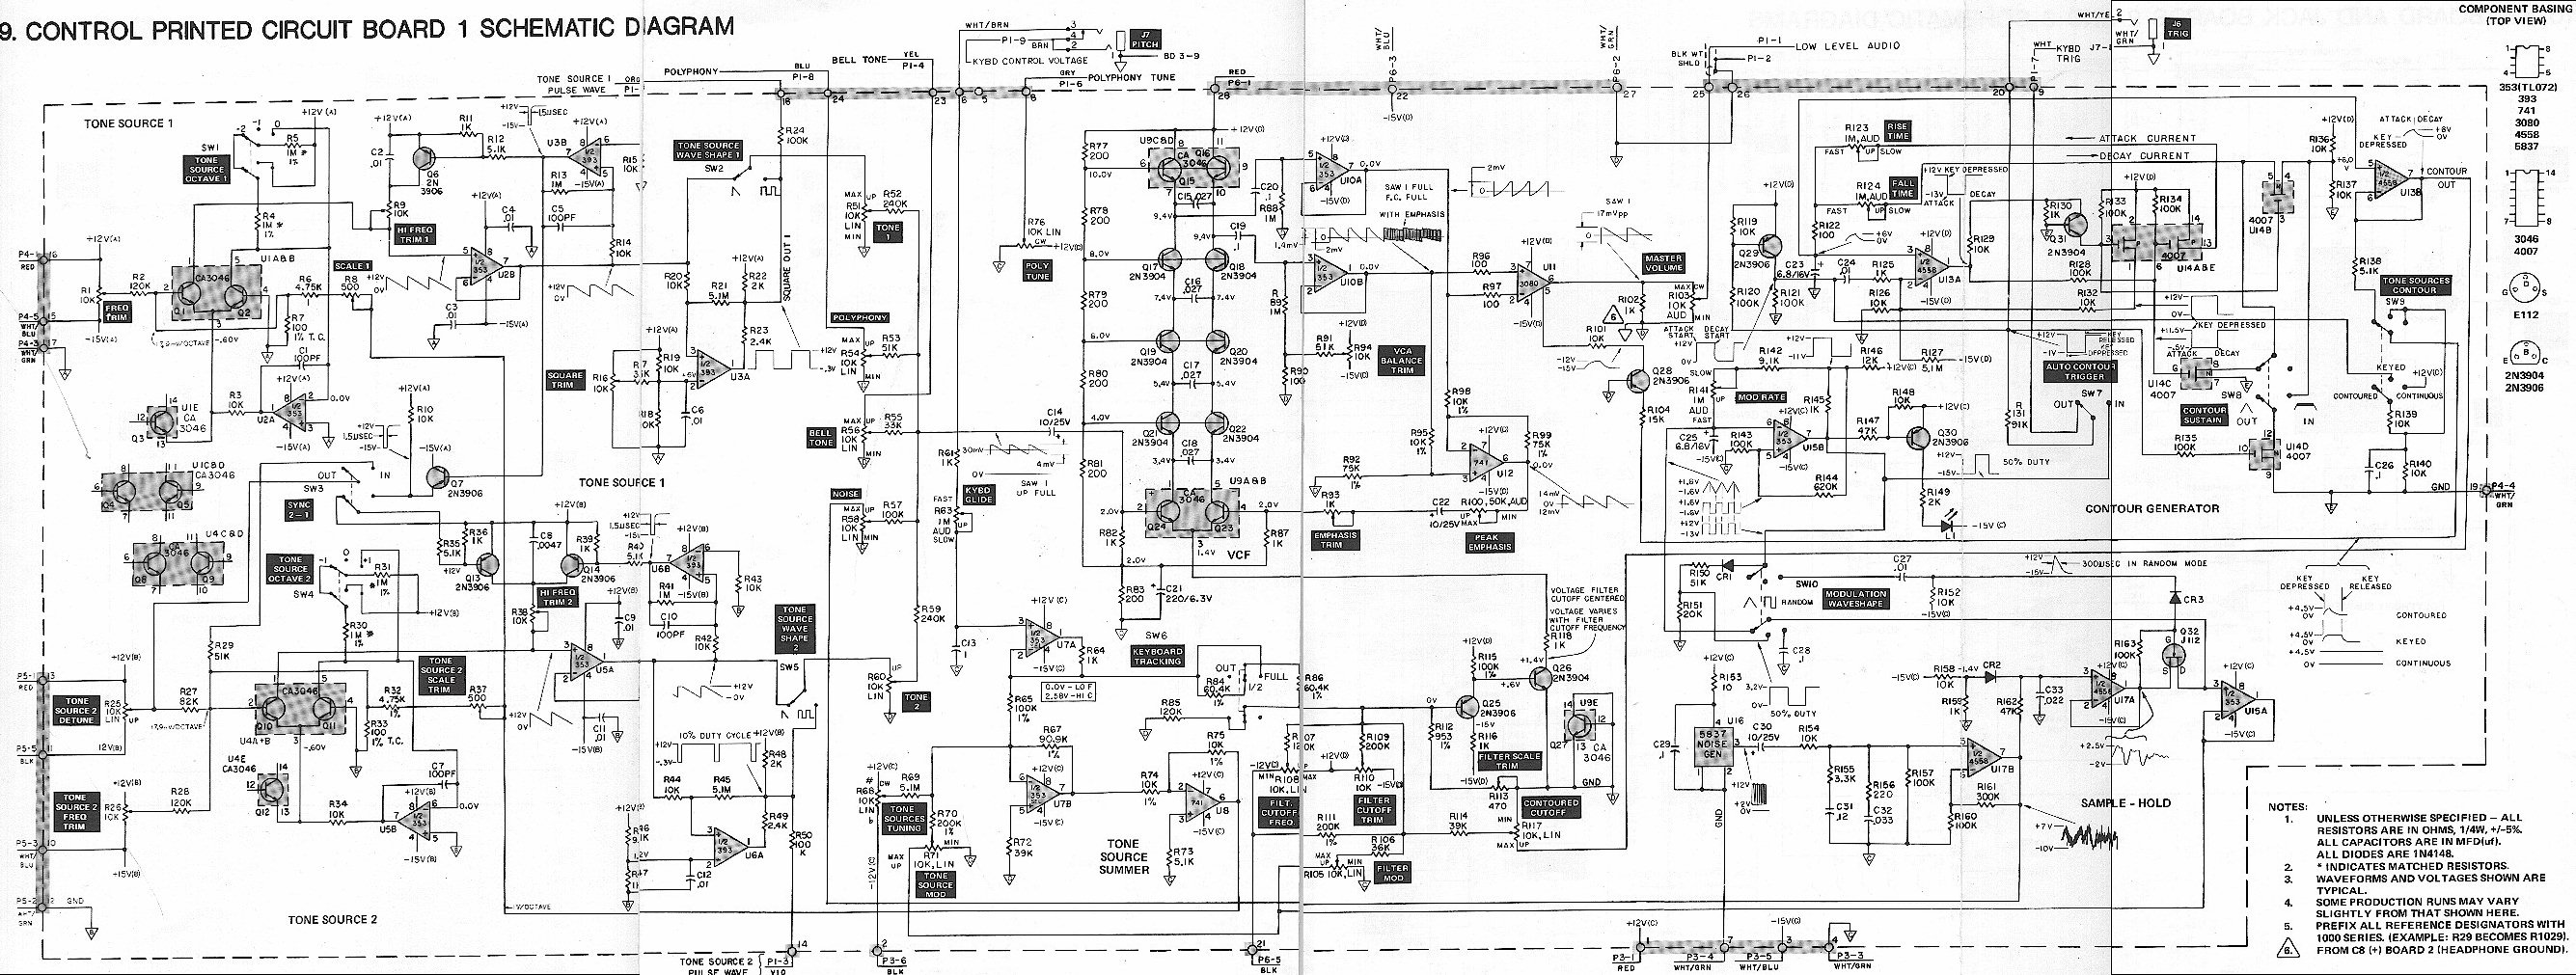 Wrg Radio Shack Schematic Diagrams